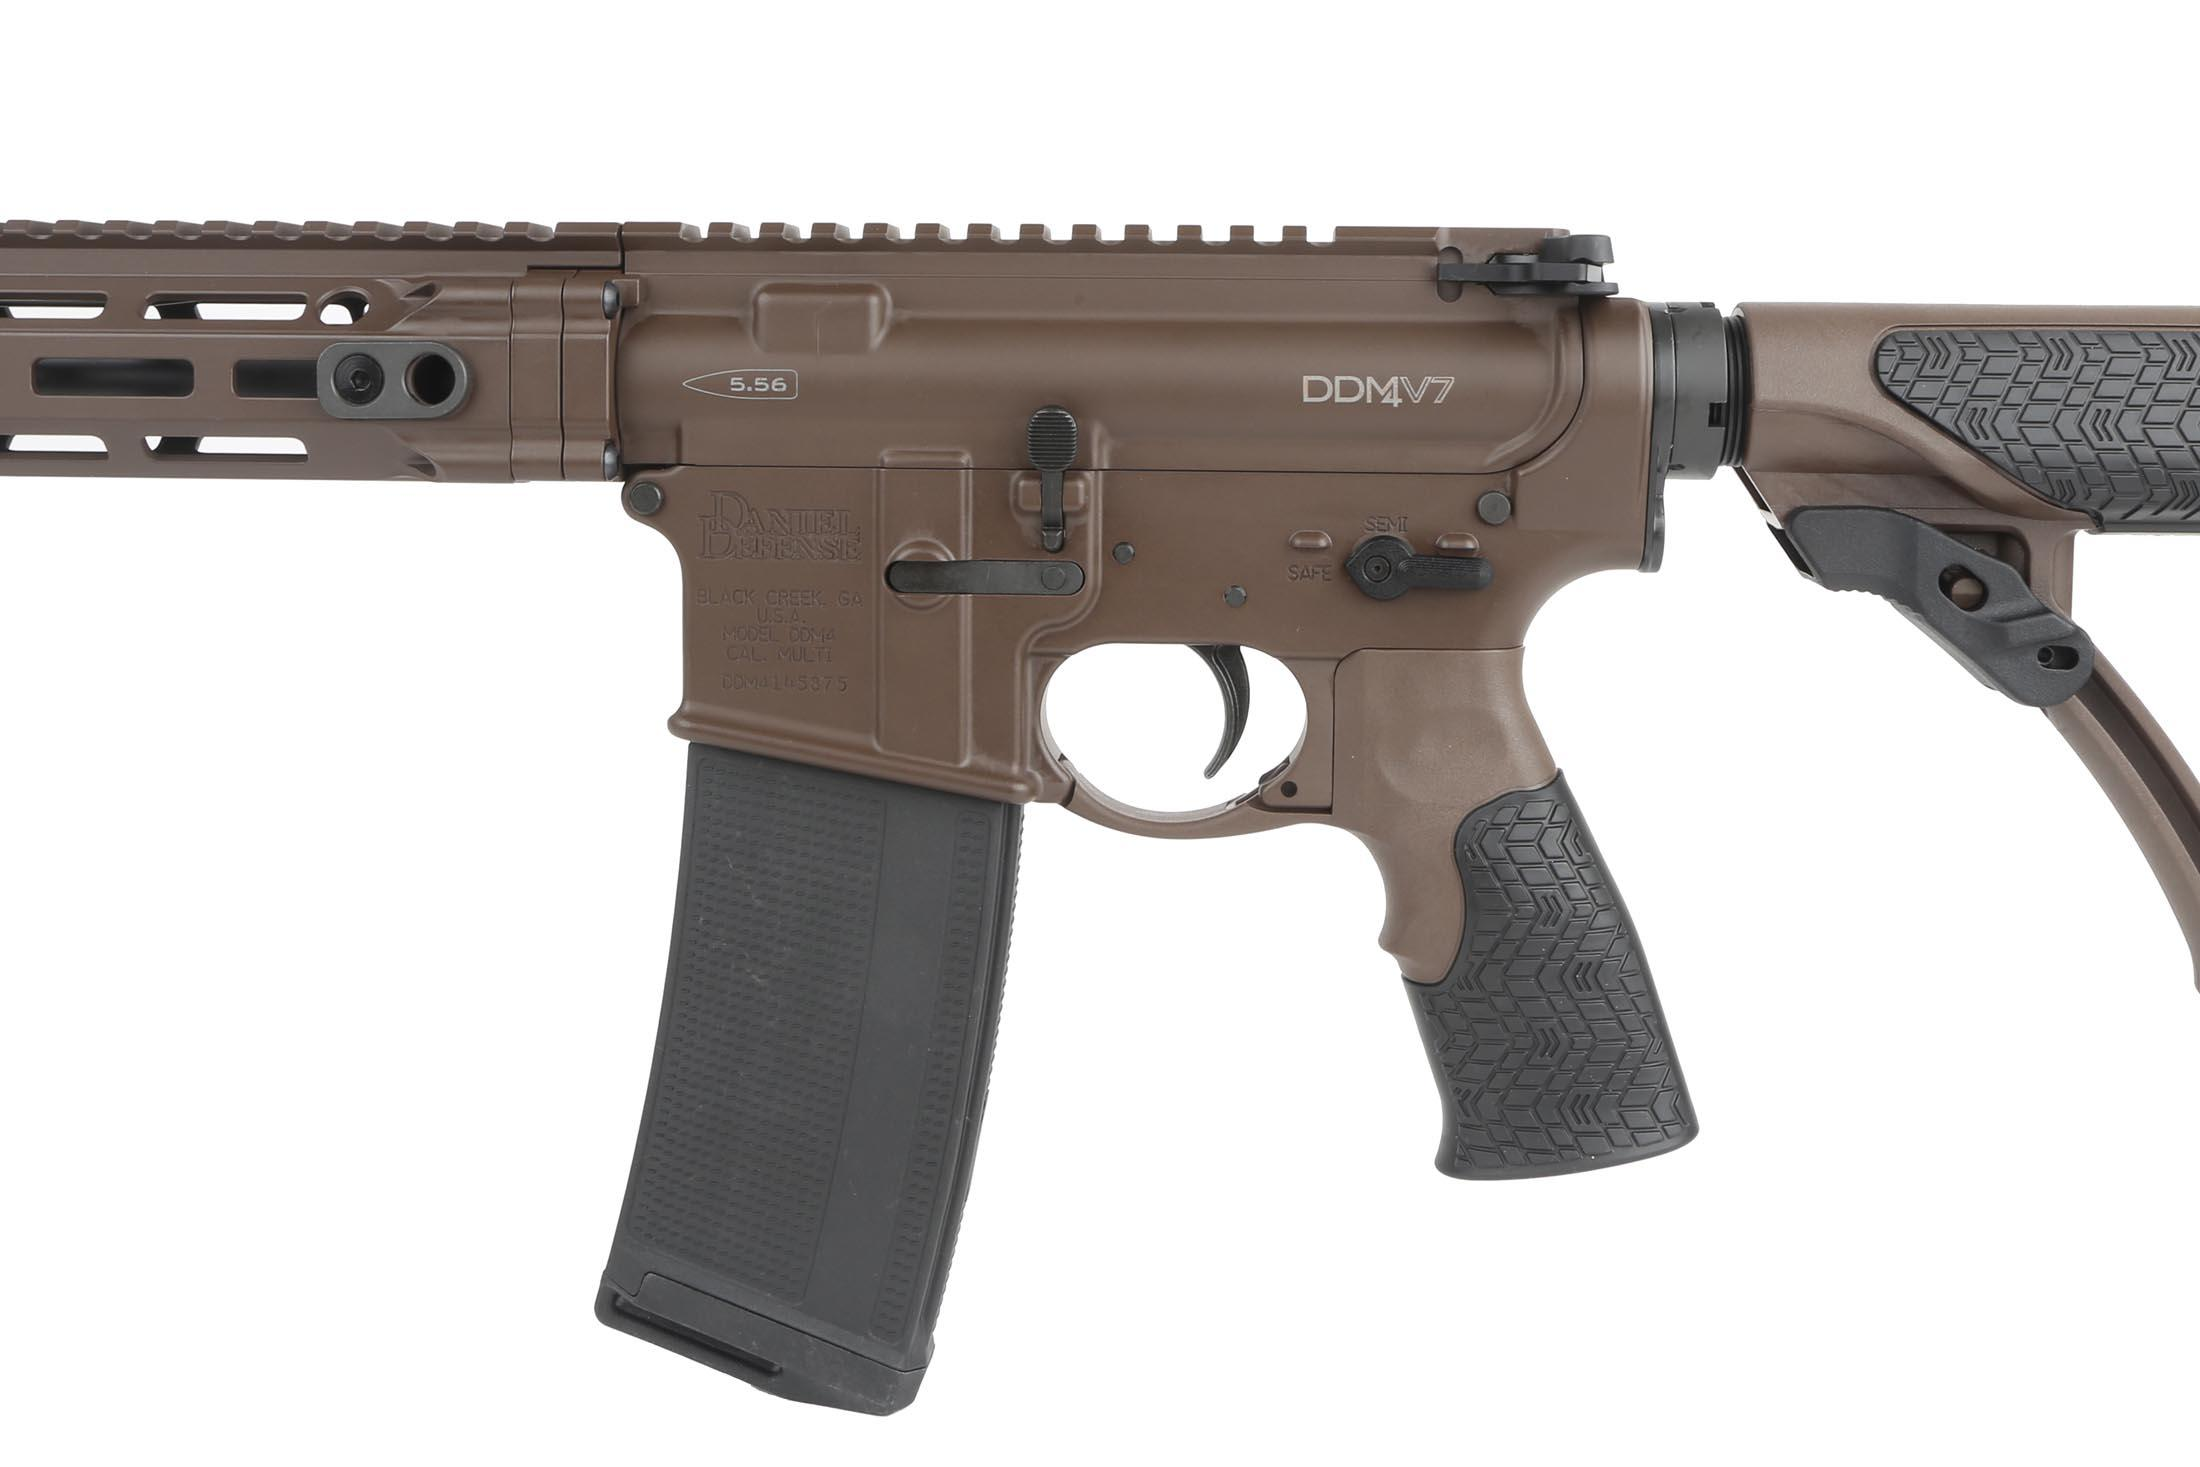 The Daniel Defense M4 v7 5.56 AR-15 is assembled with Mil-Spec components